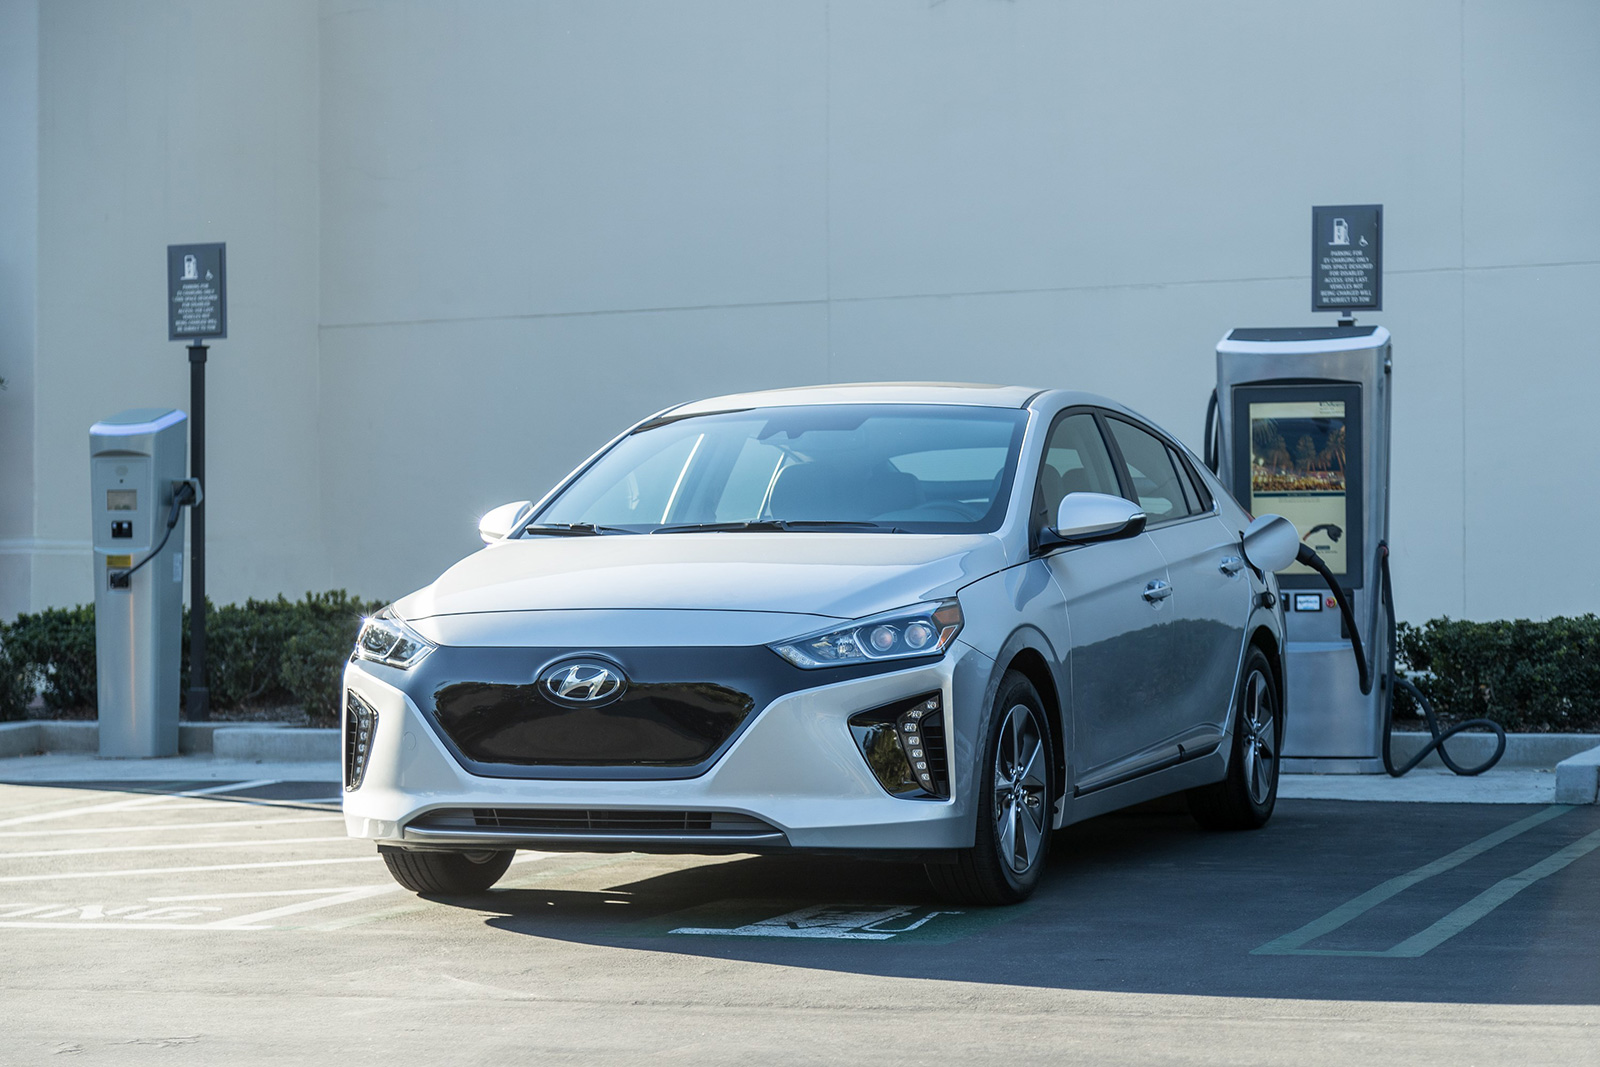 2017 Ioniq Electric Vehicle Ev